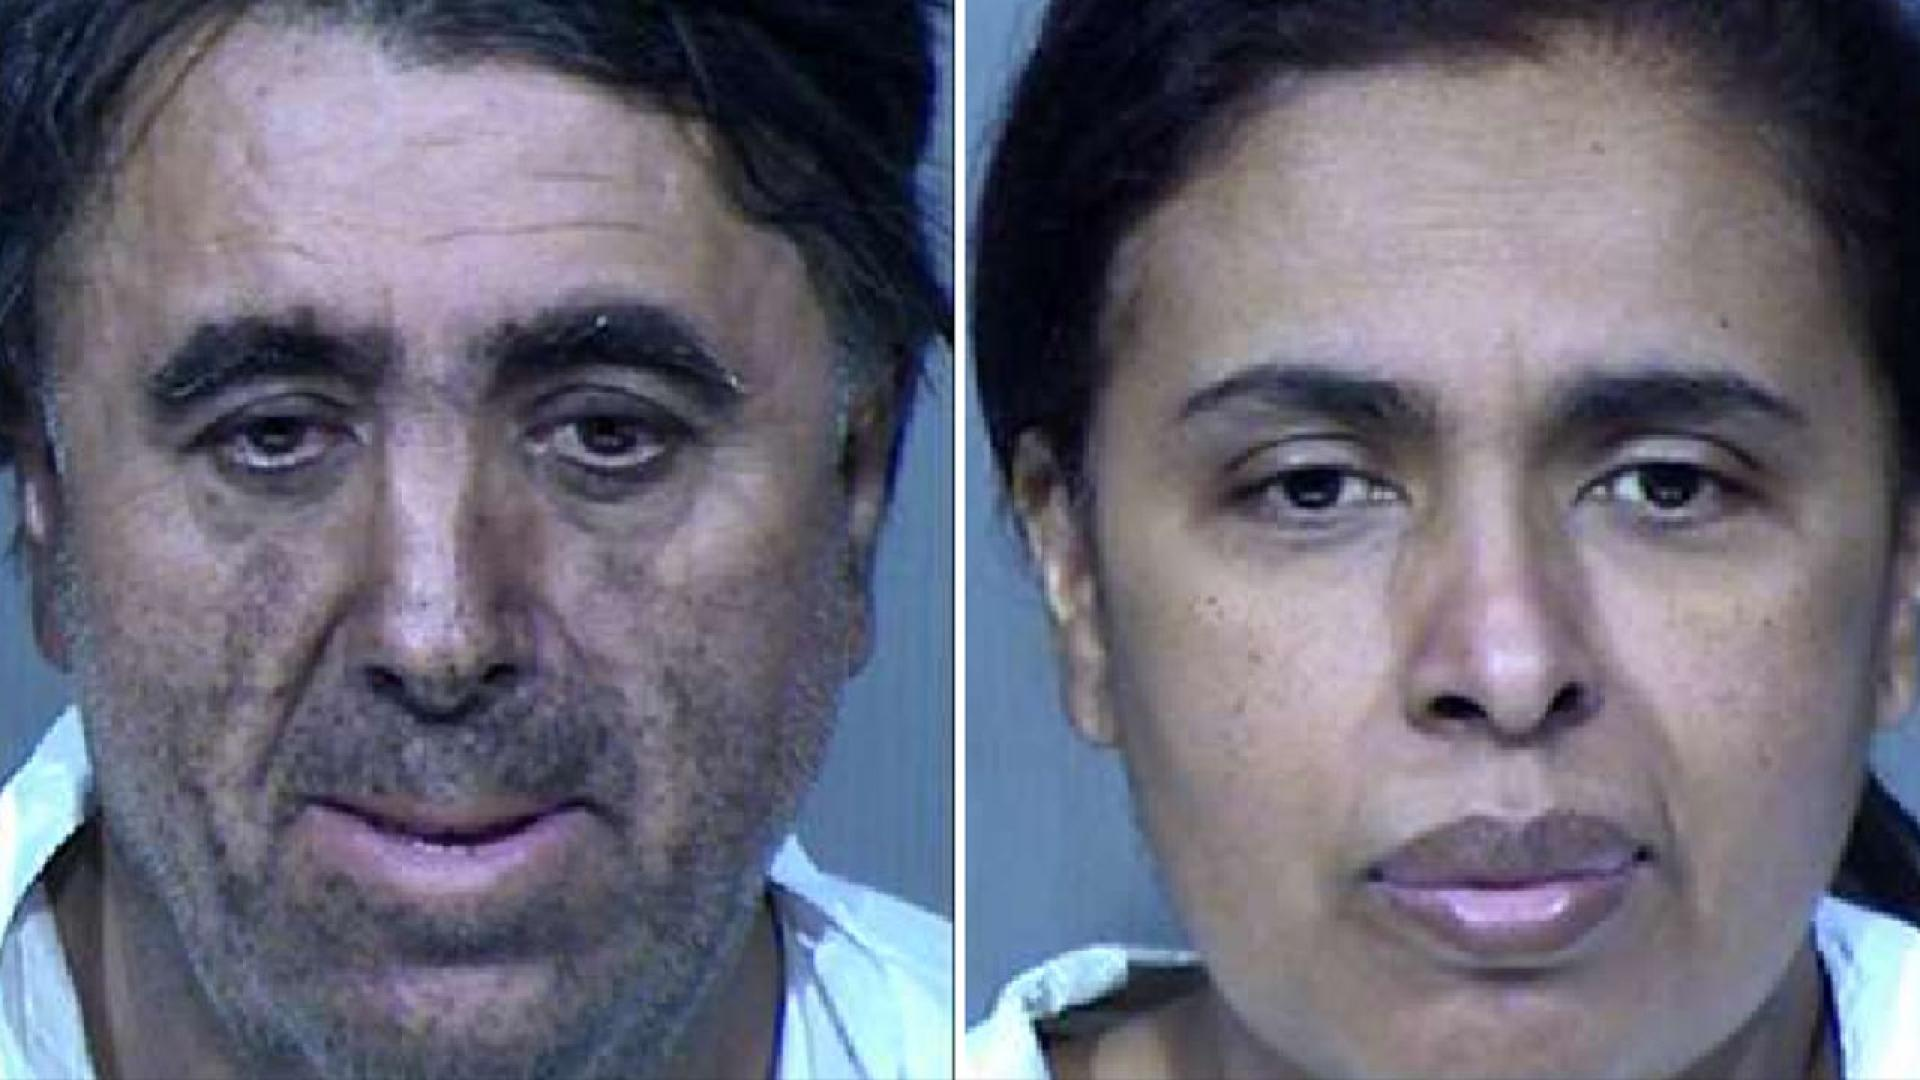 Maribel Loera, 51, and Rafael Loera, 57, have been charged with first-degree murder, several counts of child abuse, concealment of a dead body, and arson of an occupied structure in the death of their daughter.